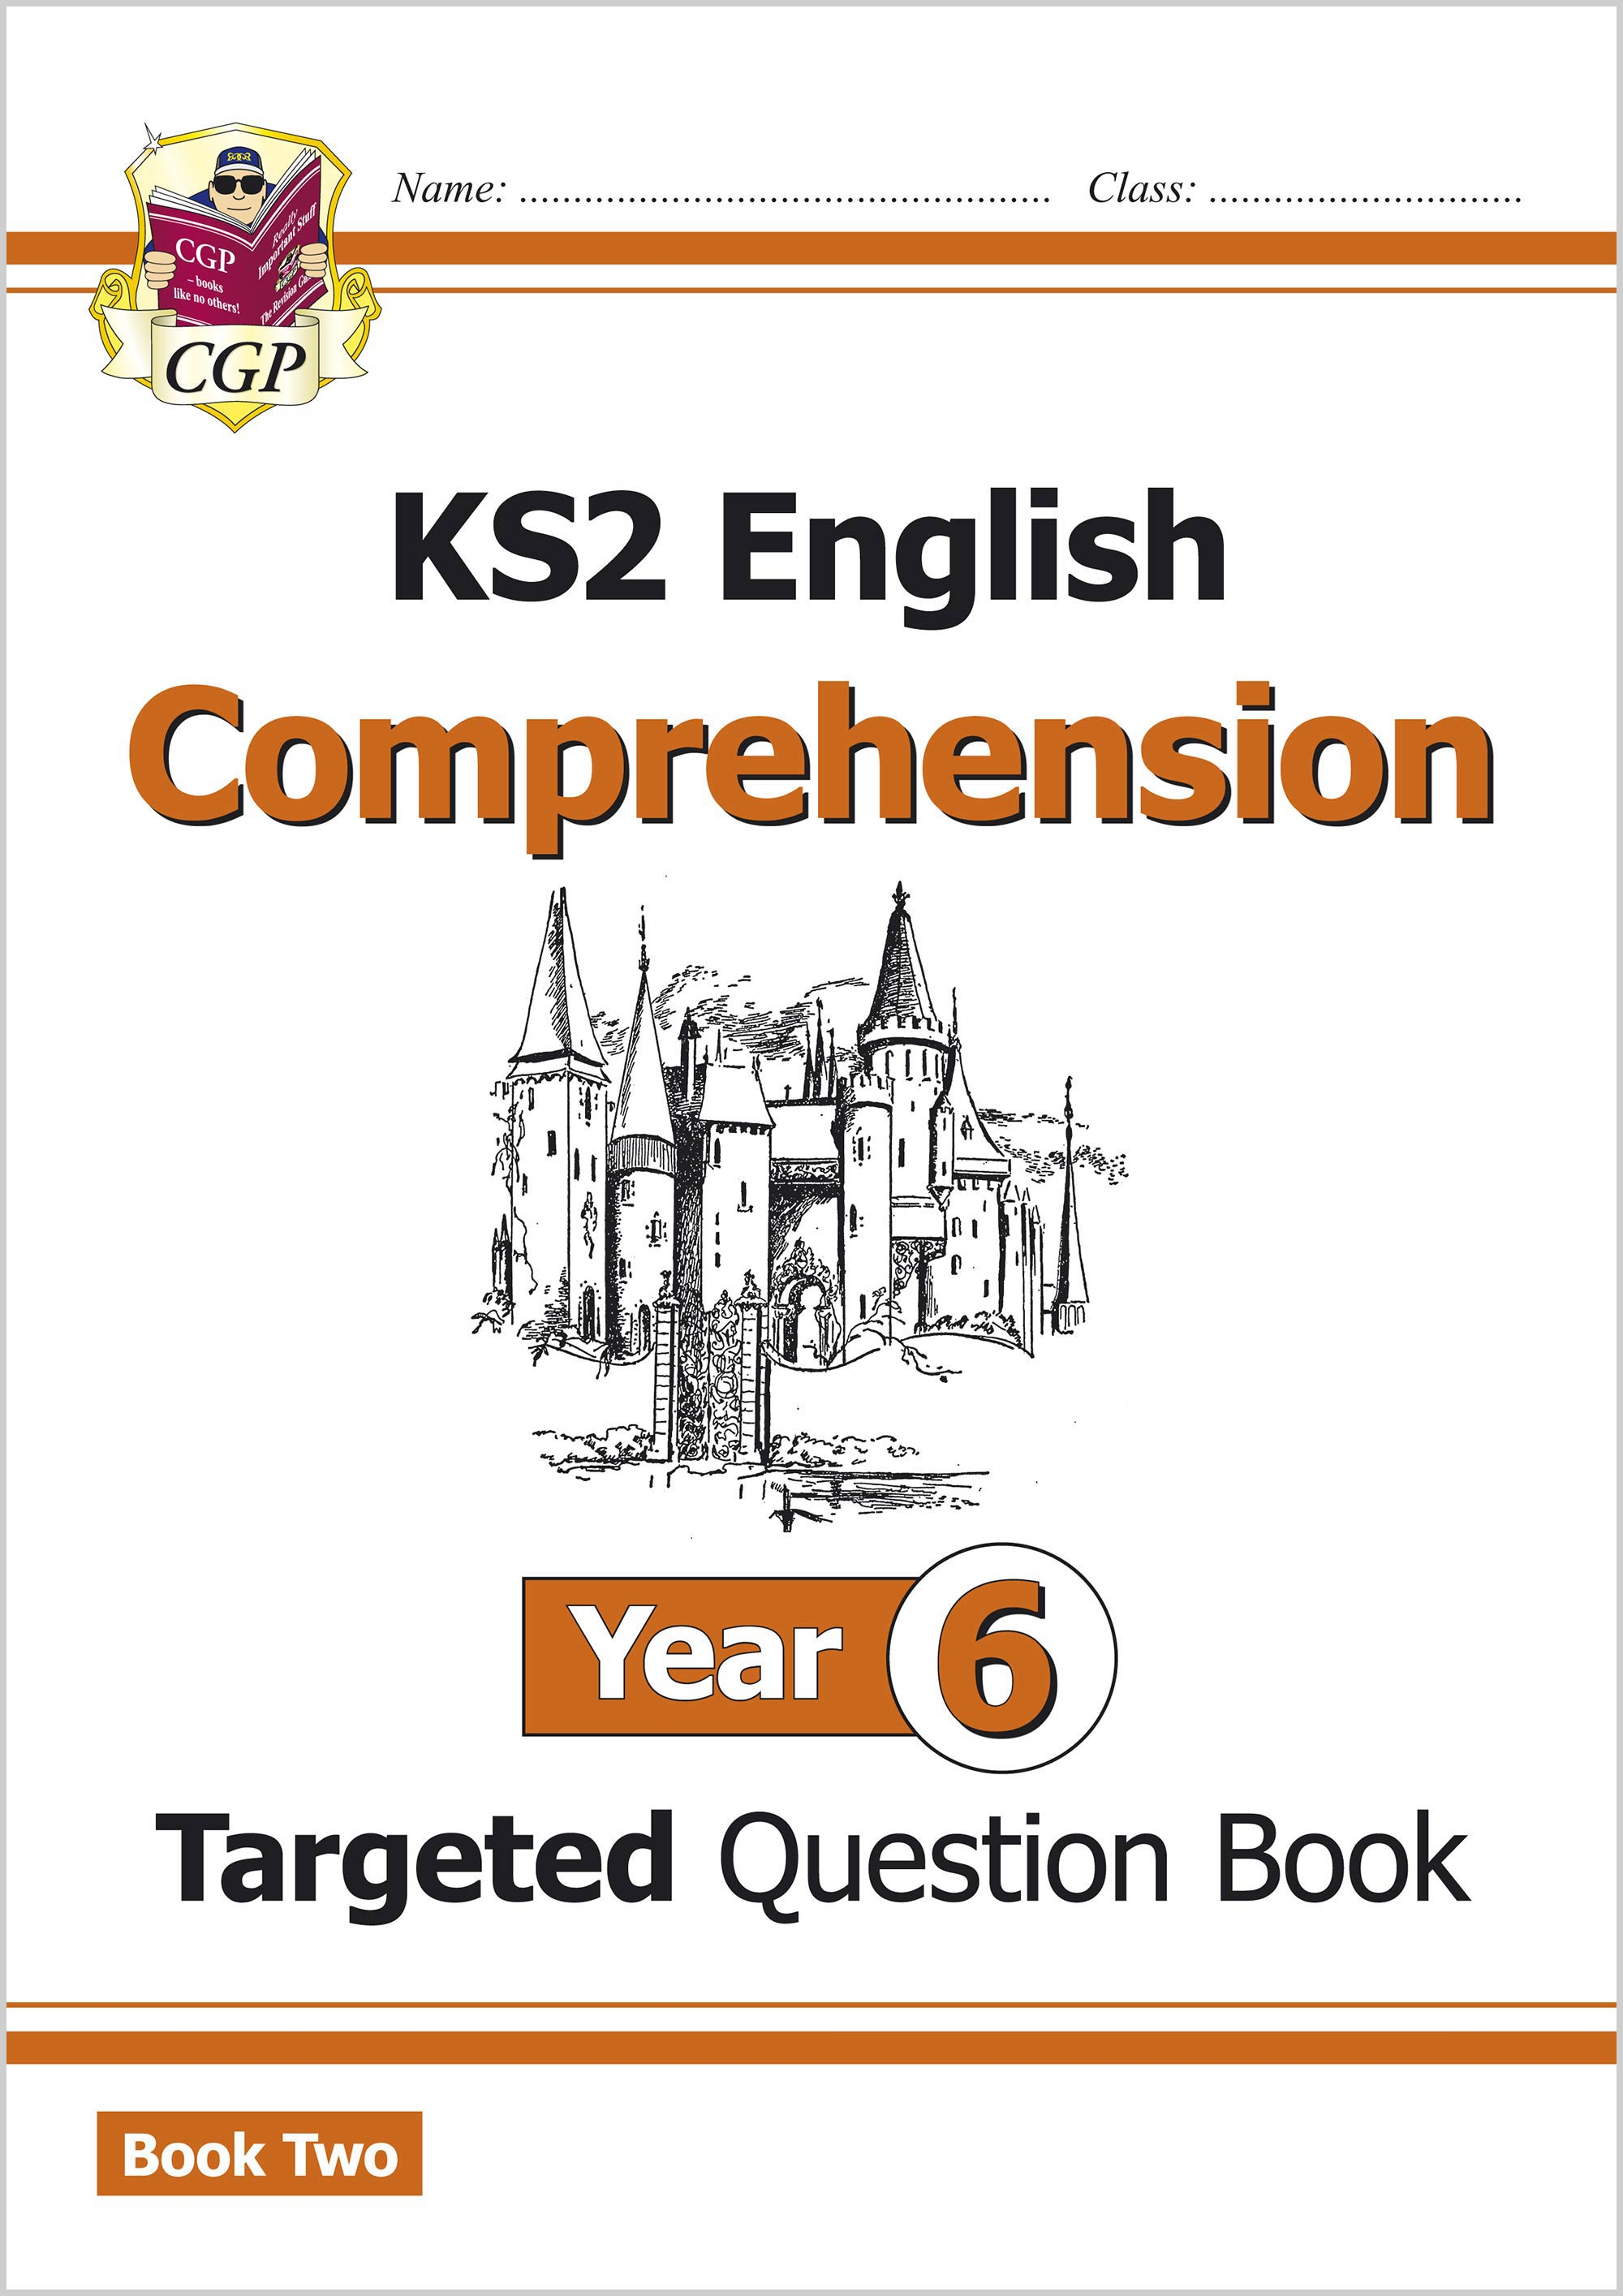 E6CW221 - New KS2 English Targeted Question Book: Year 6 Comprehension - Book 2